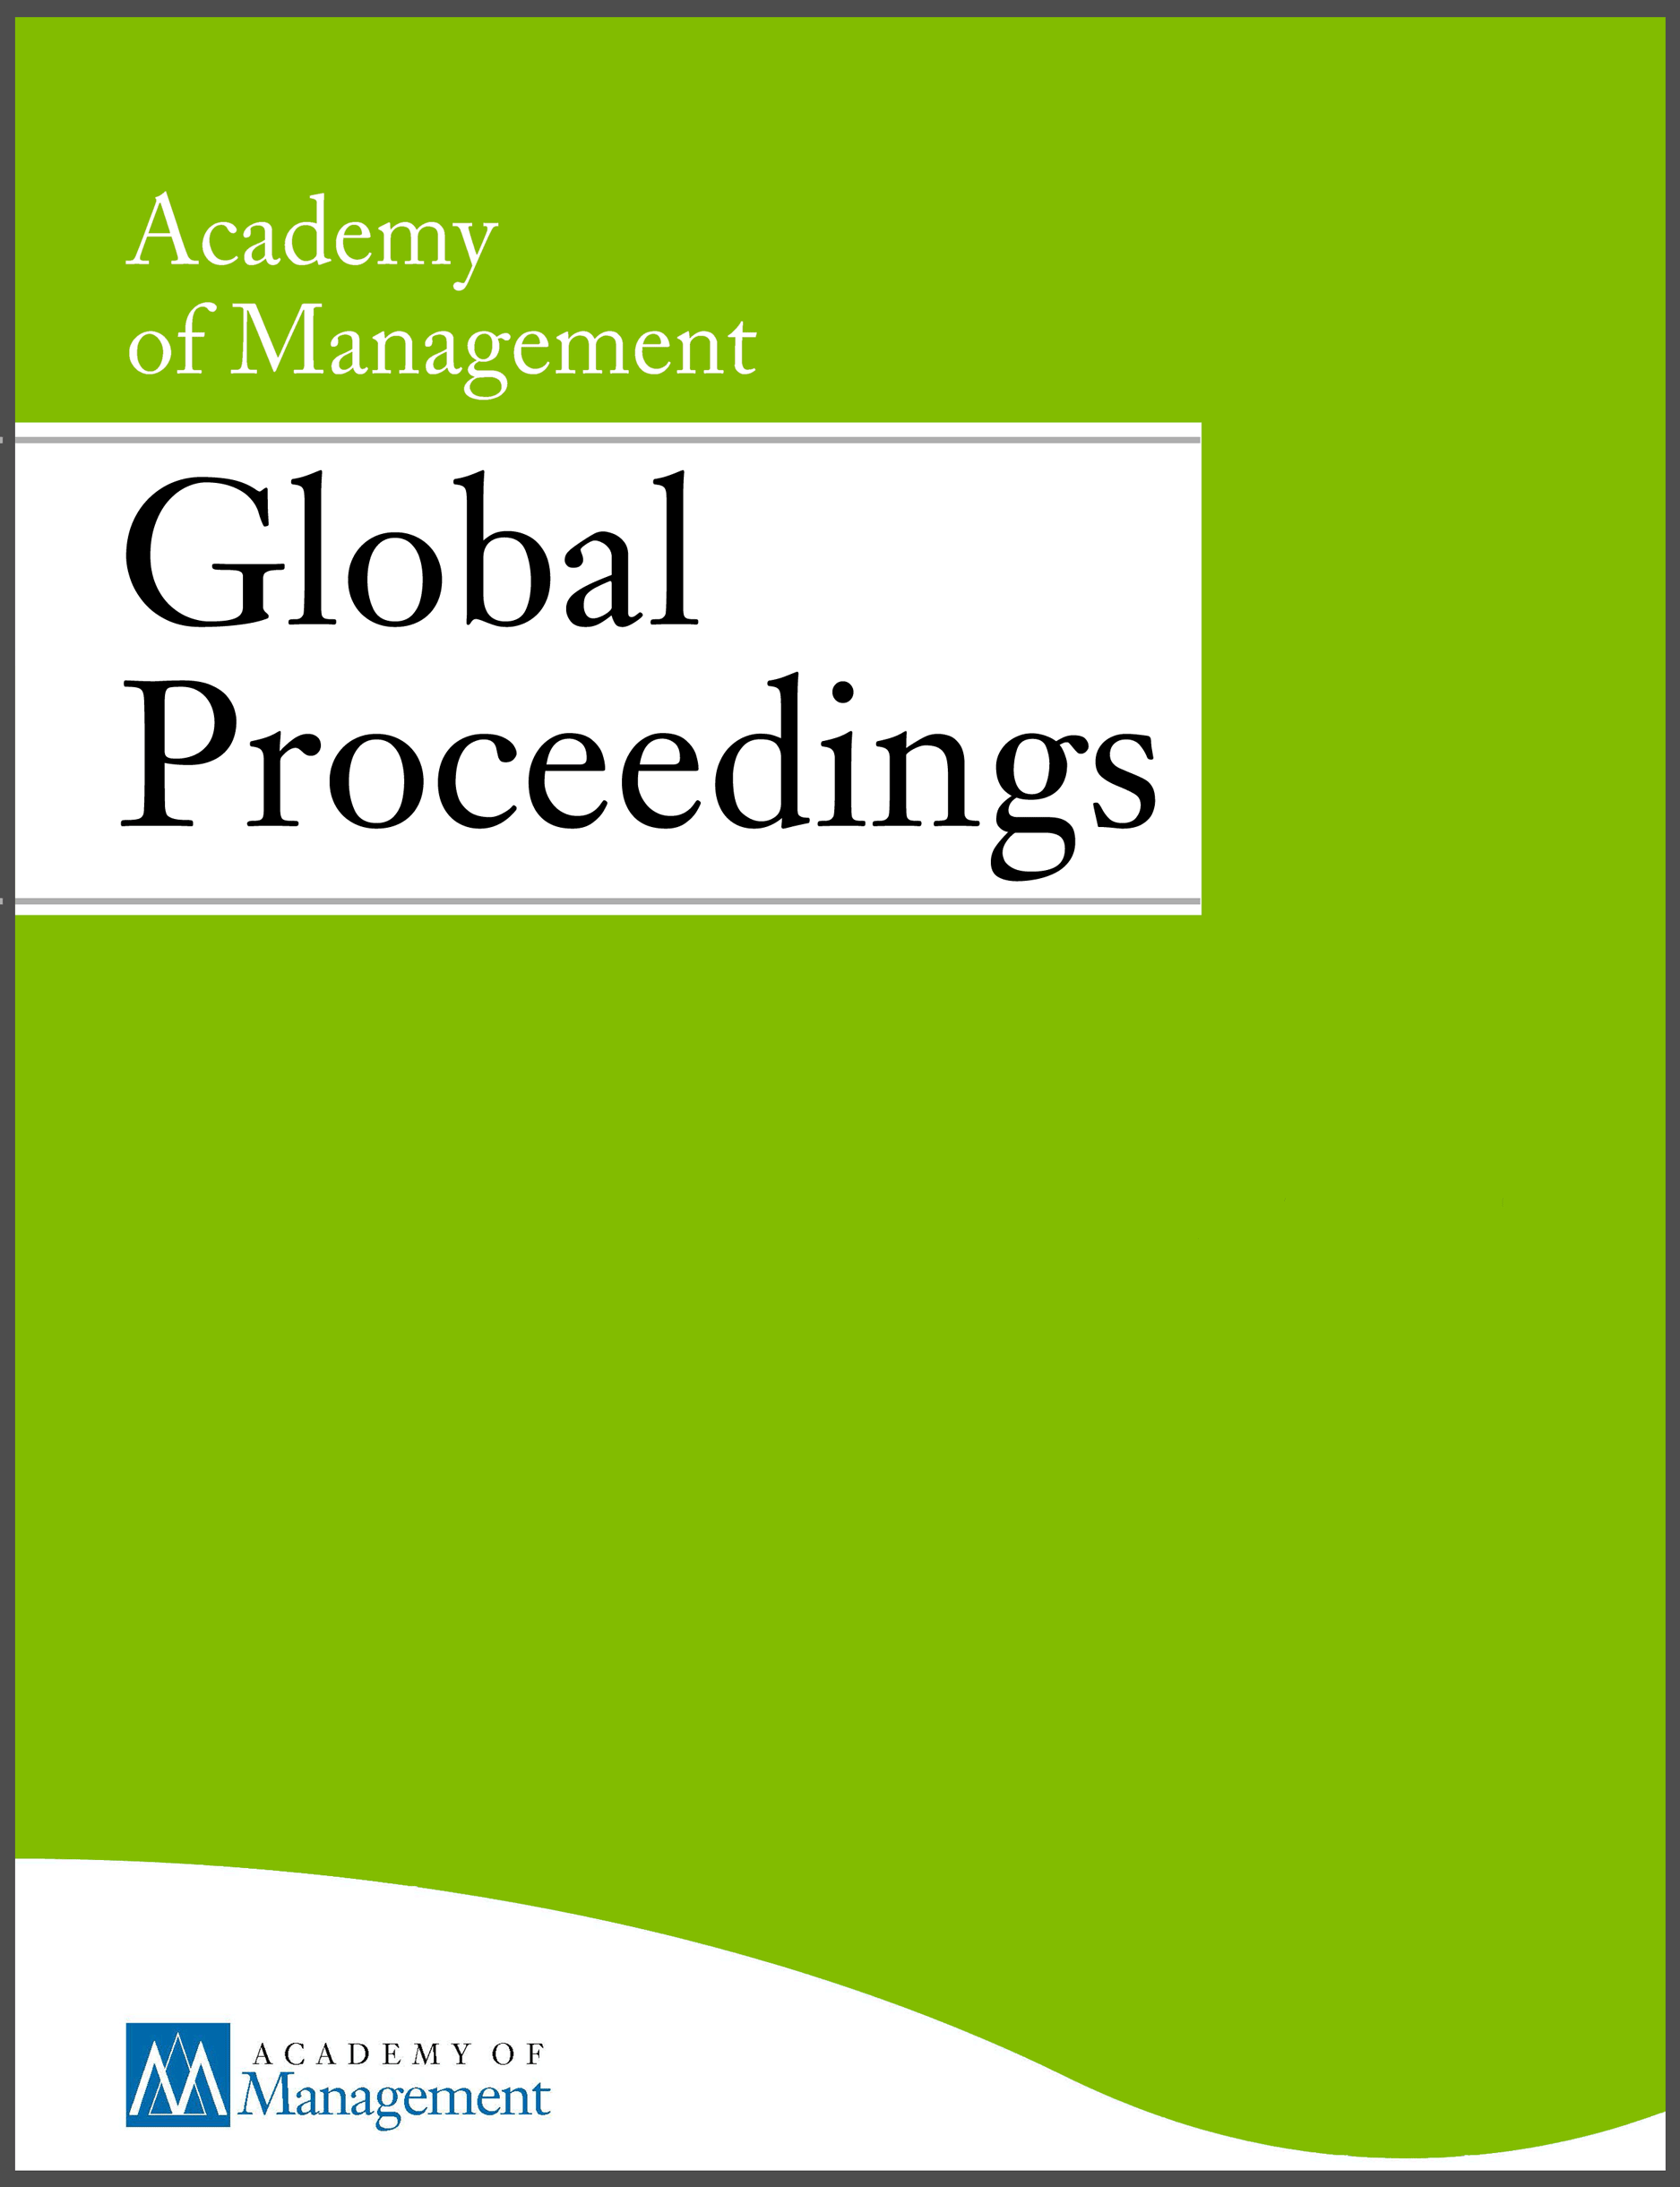 Global Proceedings logo